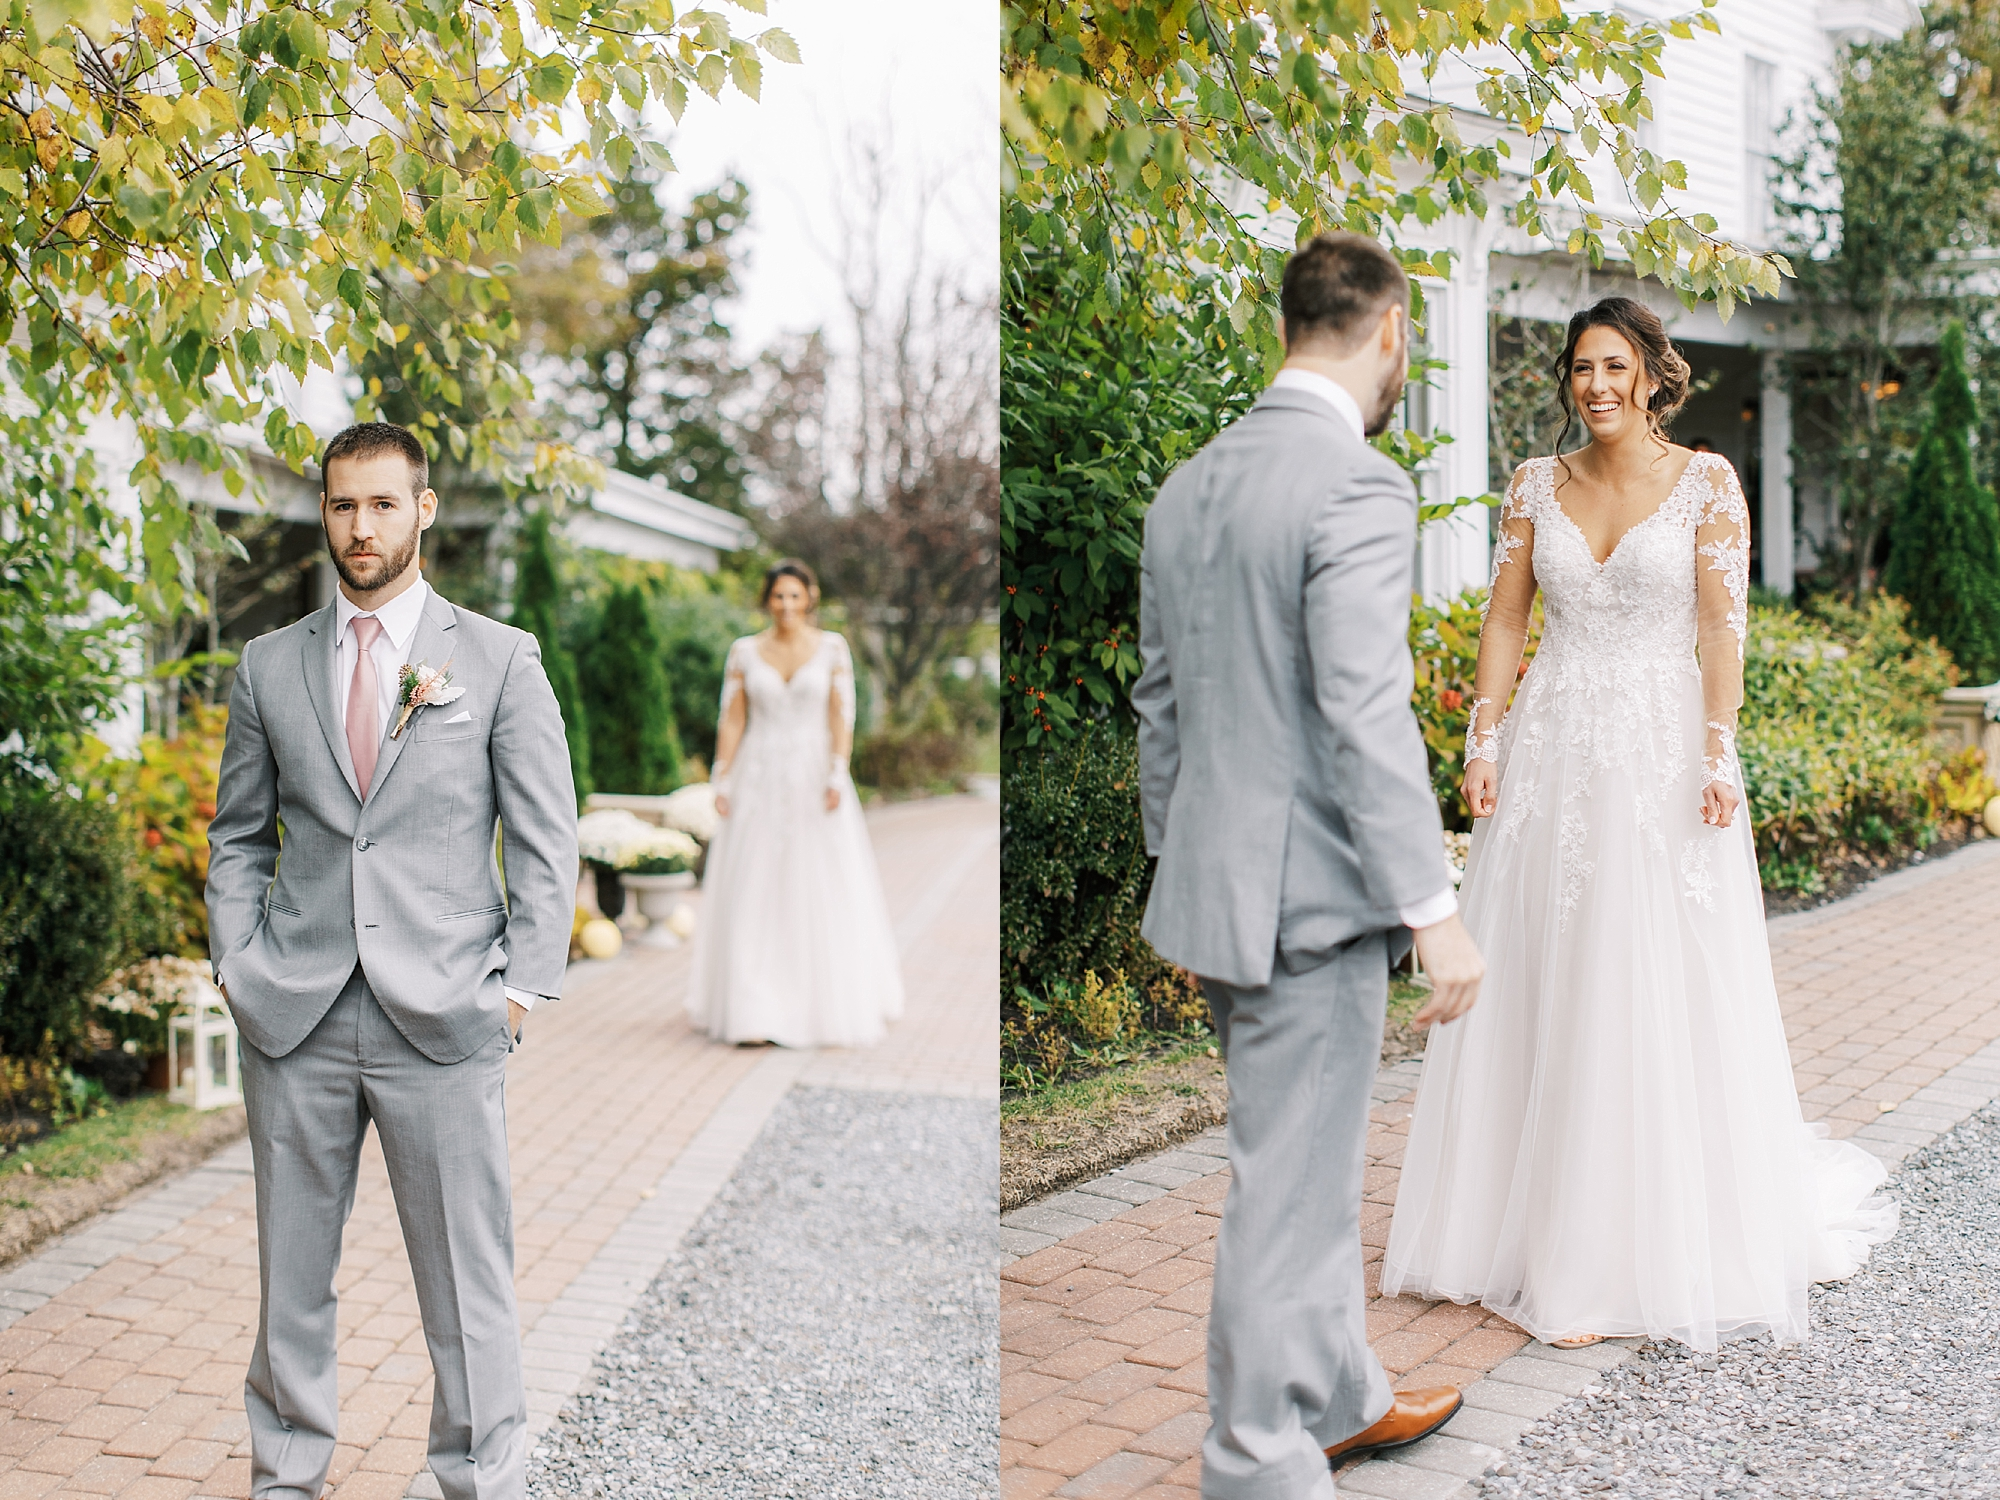 Sweet Garden Wedding Photography Abbie Holmes Estate in Cape May NJ by Magdalena Studios 0022